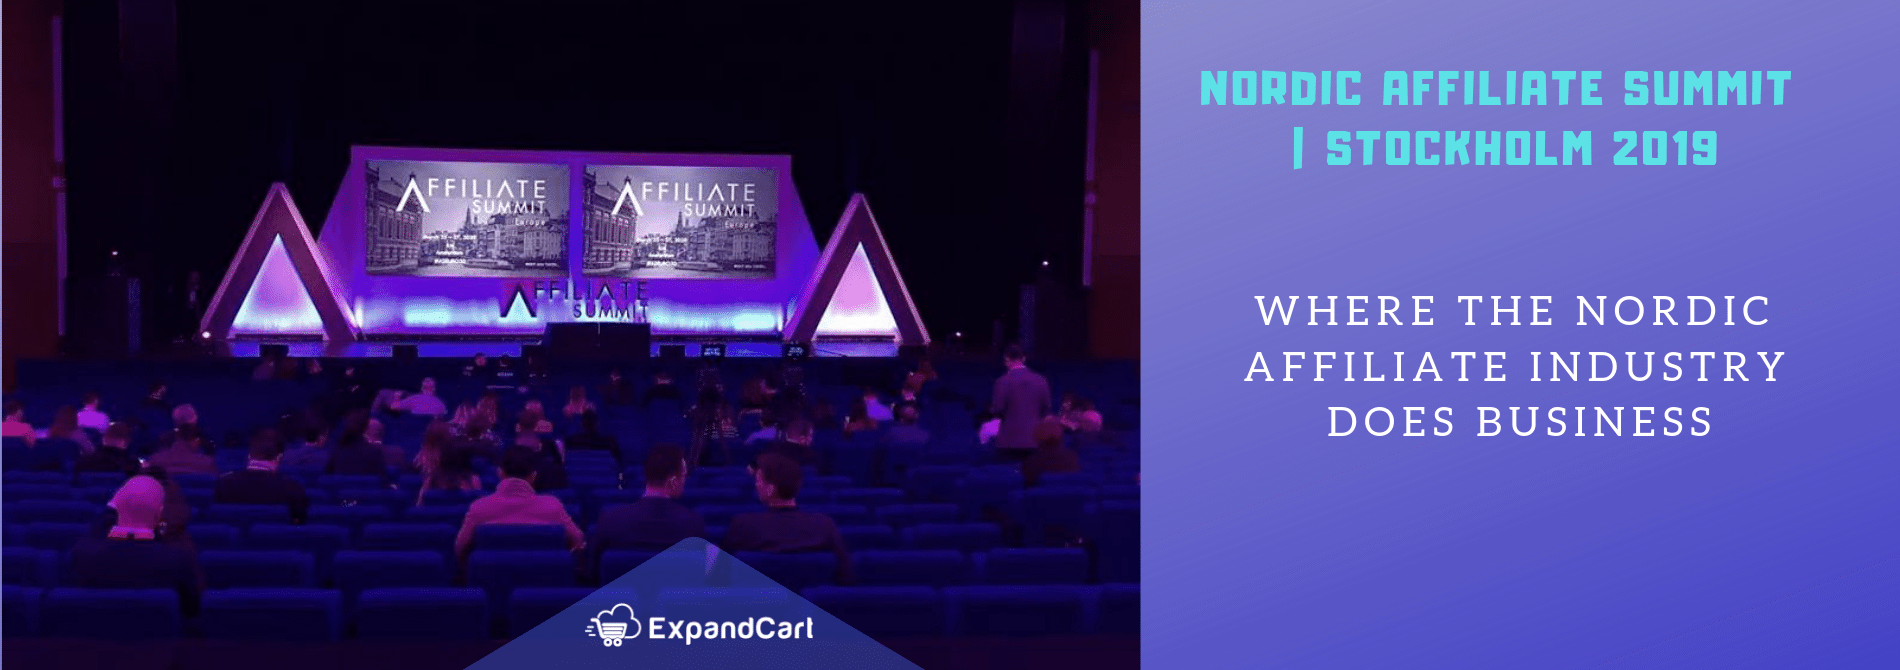 Nordic Affiliate Summit | Stockholm 2019.. Where The Nordic Affiliate Industry Does Business